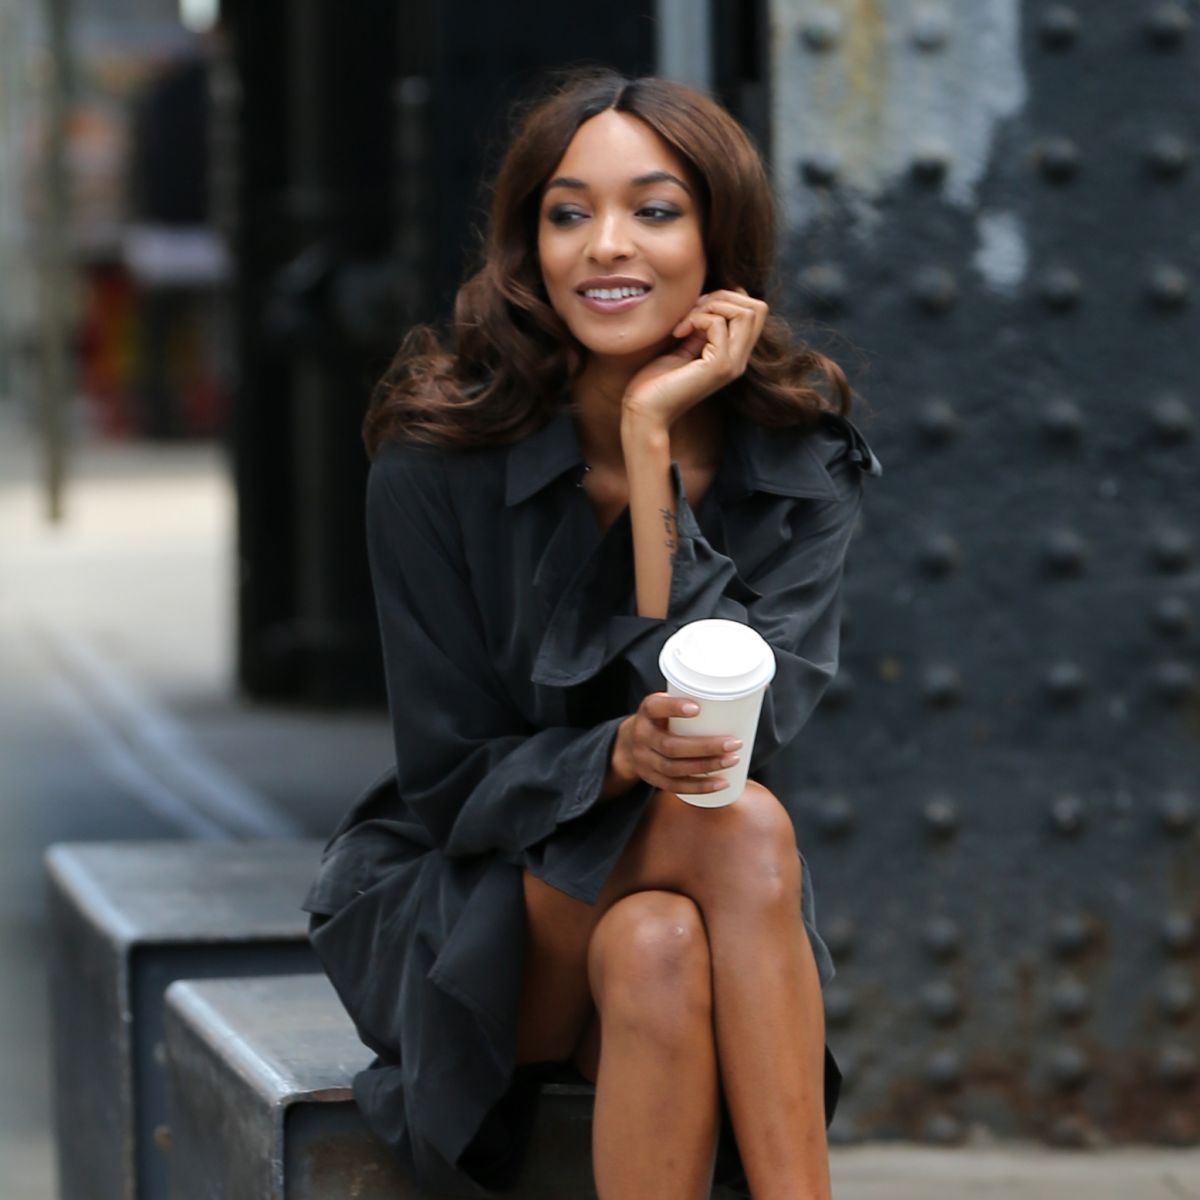 JOURDAN DUNN on the Set of a Photoshoot for Vogue Magazin in New York 06/03/2017